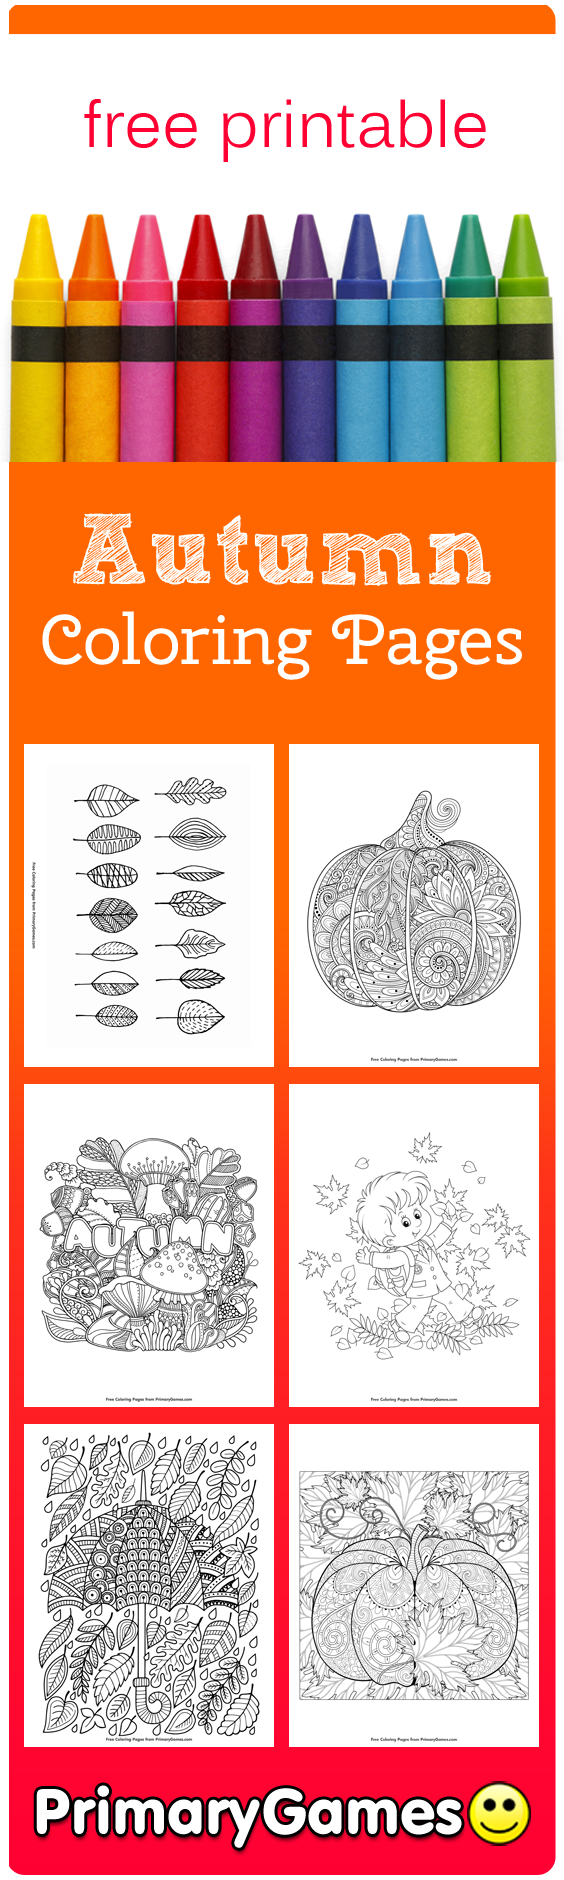 Online virtual coloring - Online Games At Primarygames Com